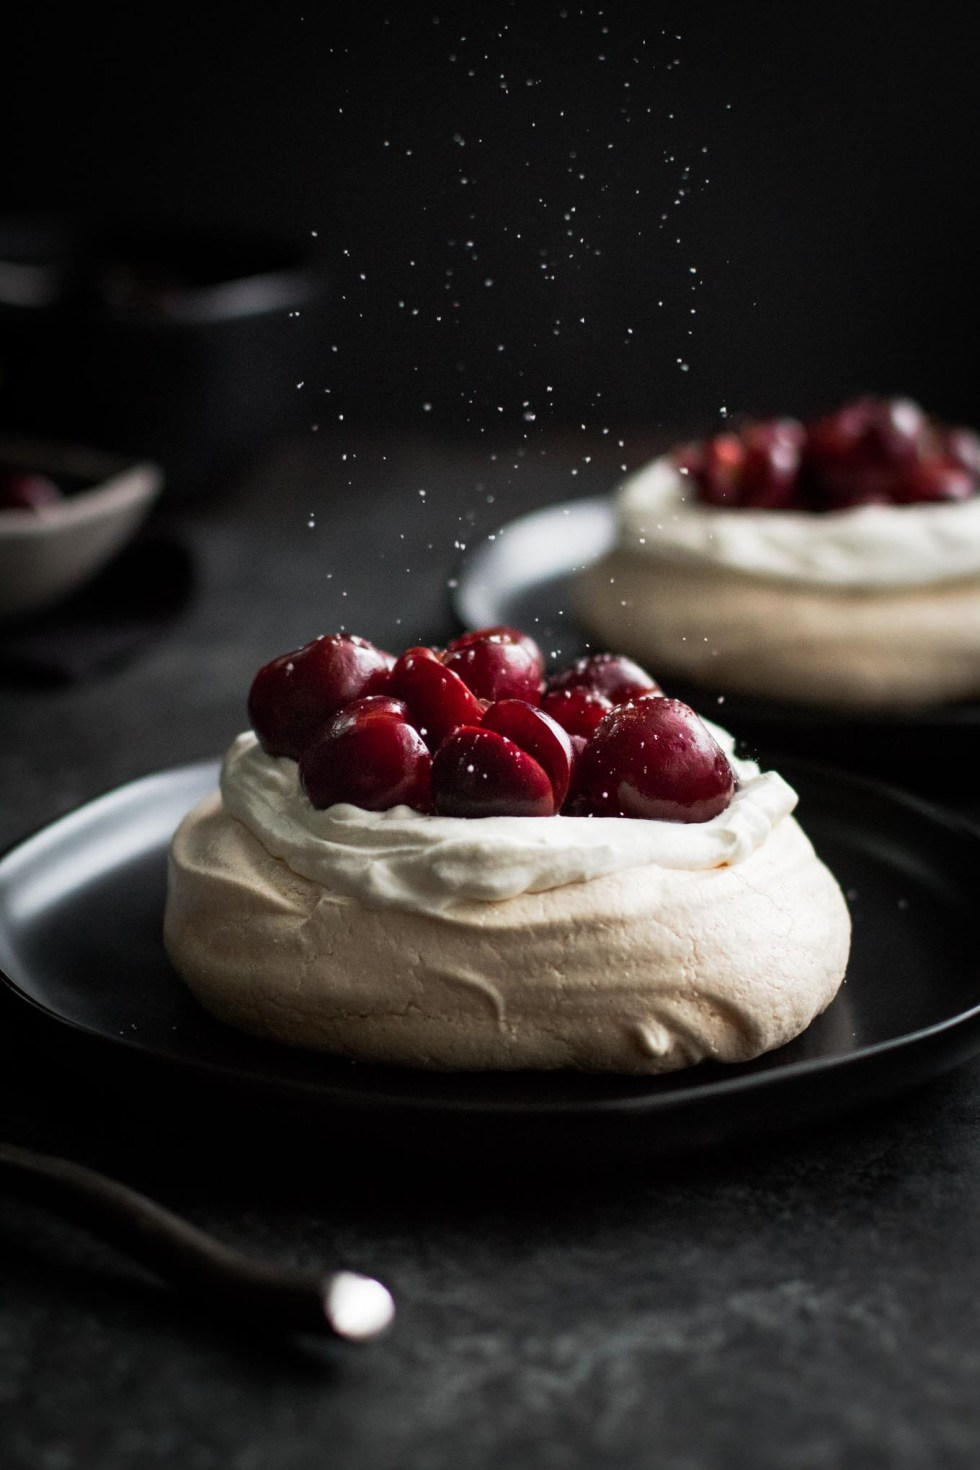 Two servings of pavlova with whipped cream and bourbon-soaked cherries